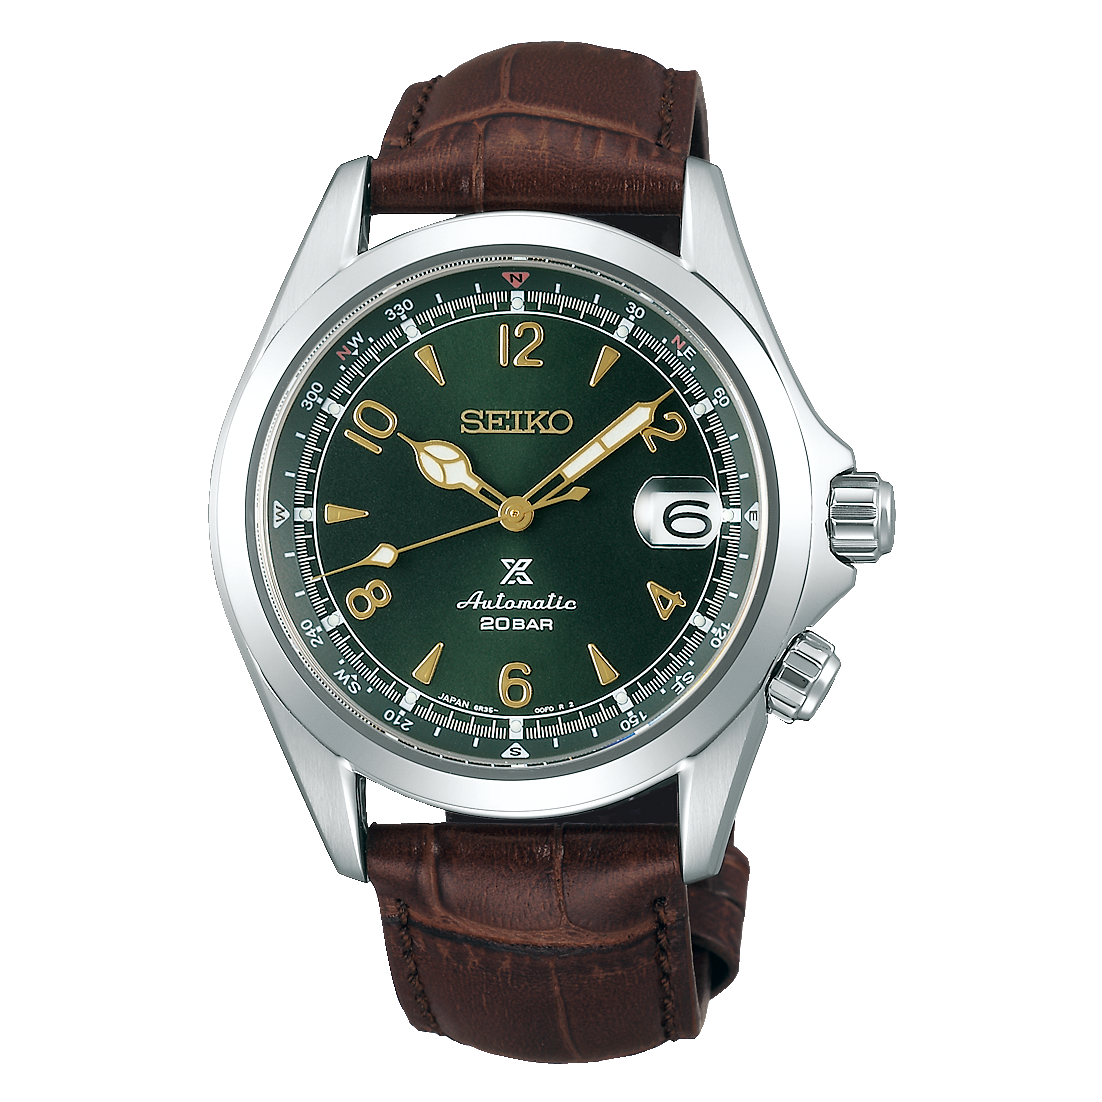 Seiko Alpinist SPB121 Green Dial Leather Strap